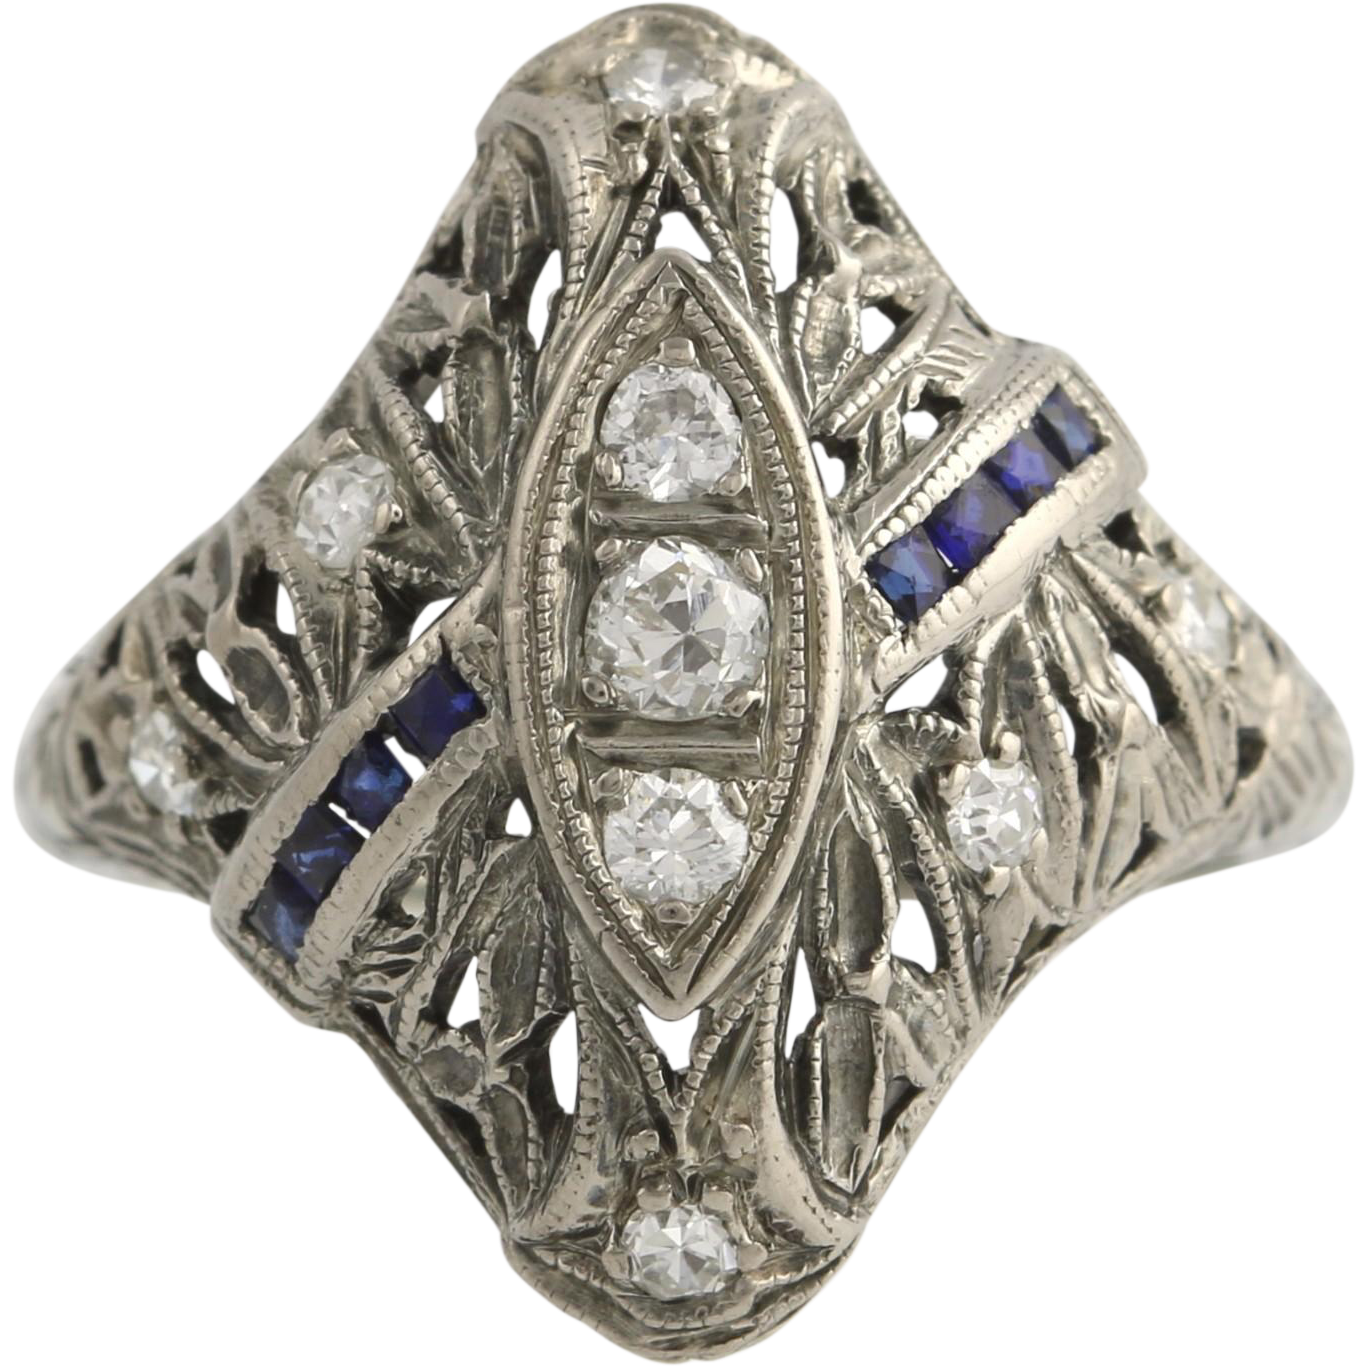 Art Deco Diamond & Syn Sapphire Ring - 18k White Gold .56ctw Cocktail Vintage